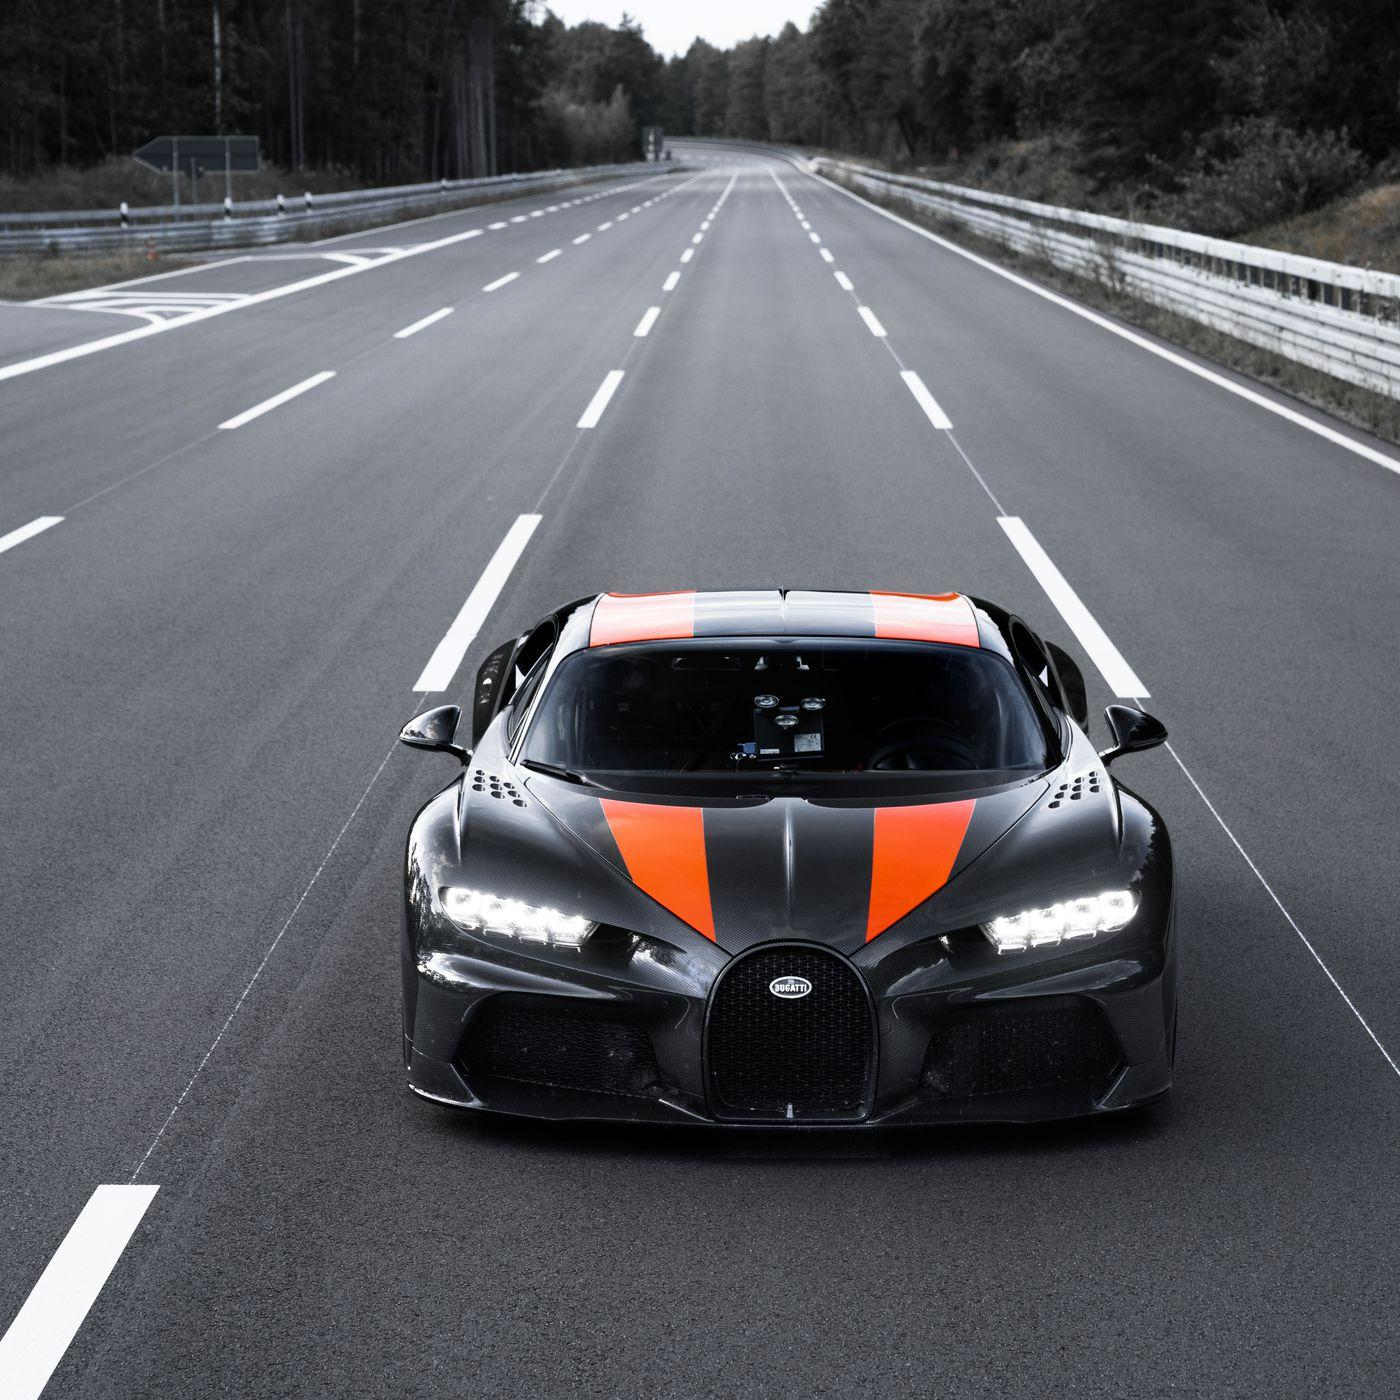 Bugatti Sport: Bugatti Chiron Super Sport 300 Prototype 2019 Wallpapers